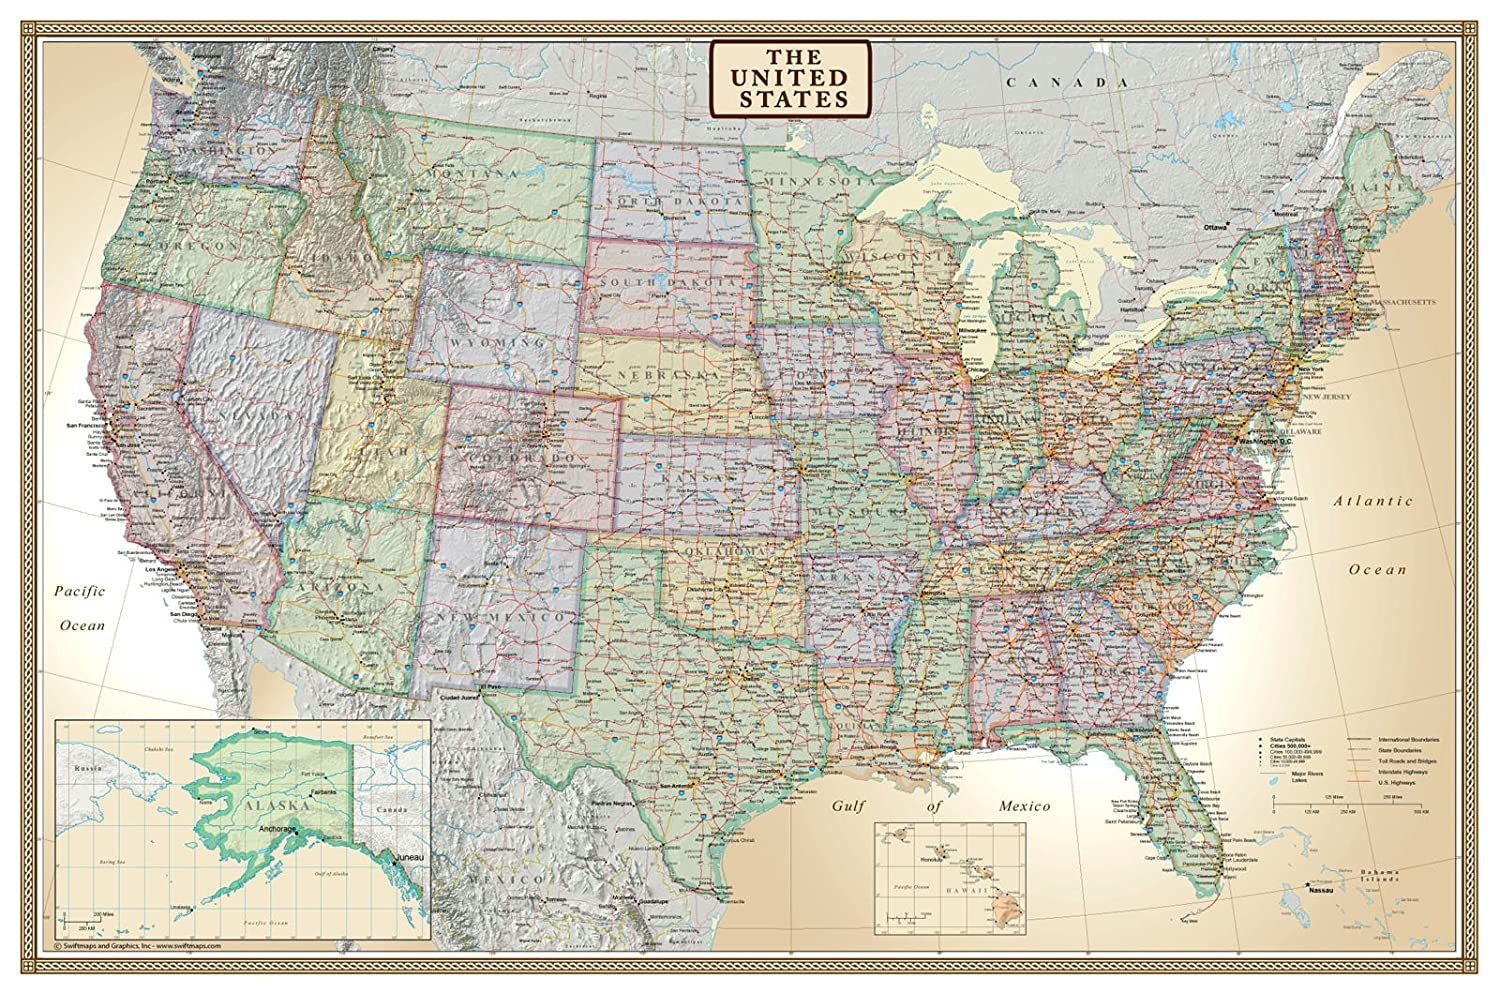 Amazoncom X United States USA US Executive Wall Map Poster - Maps united states